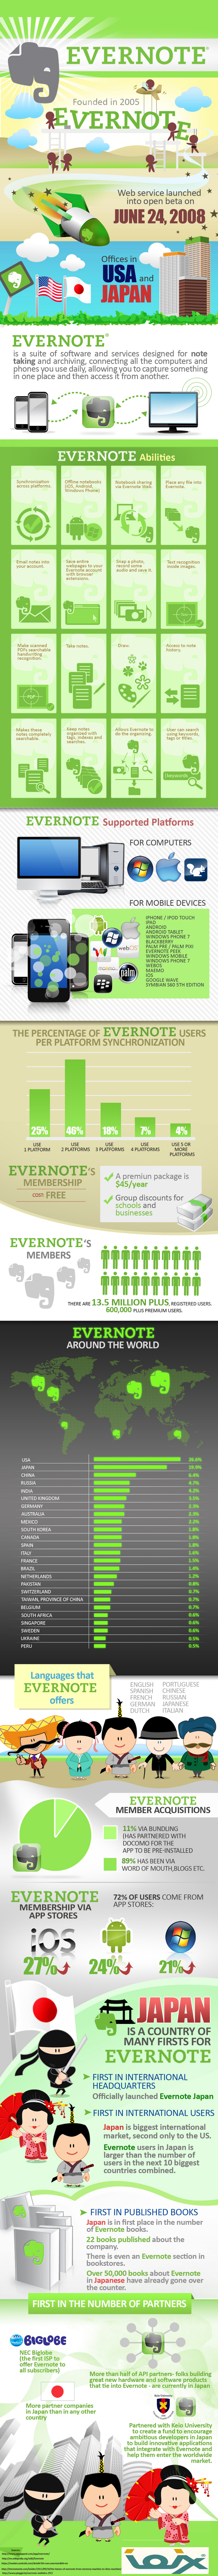 Guide to Evernote